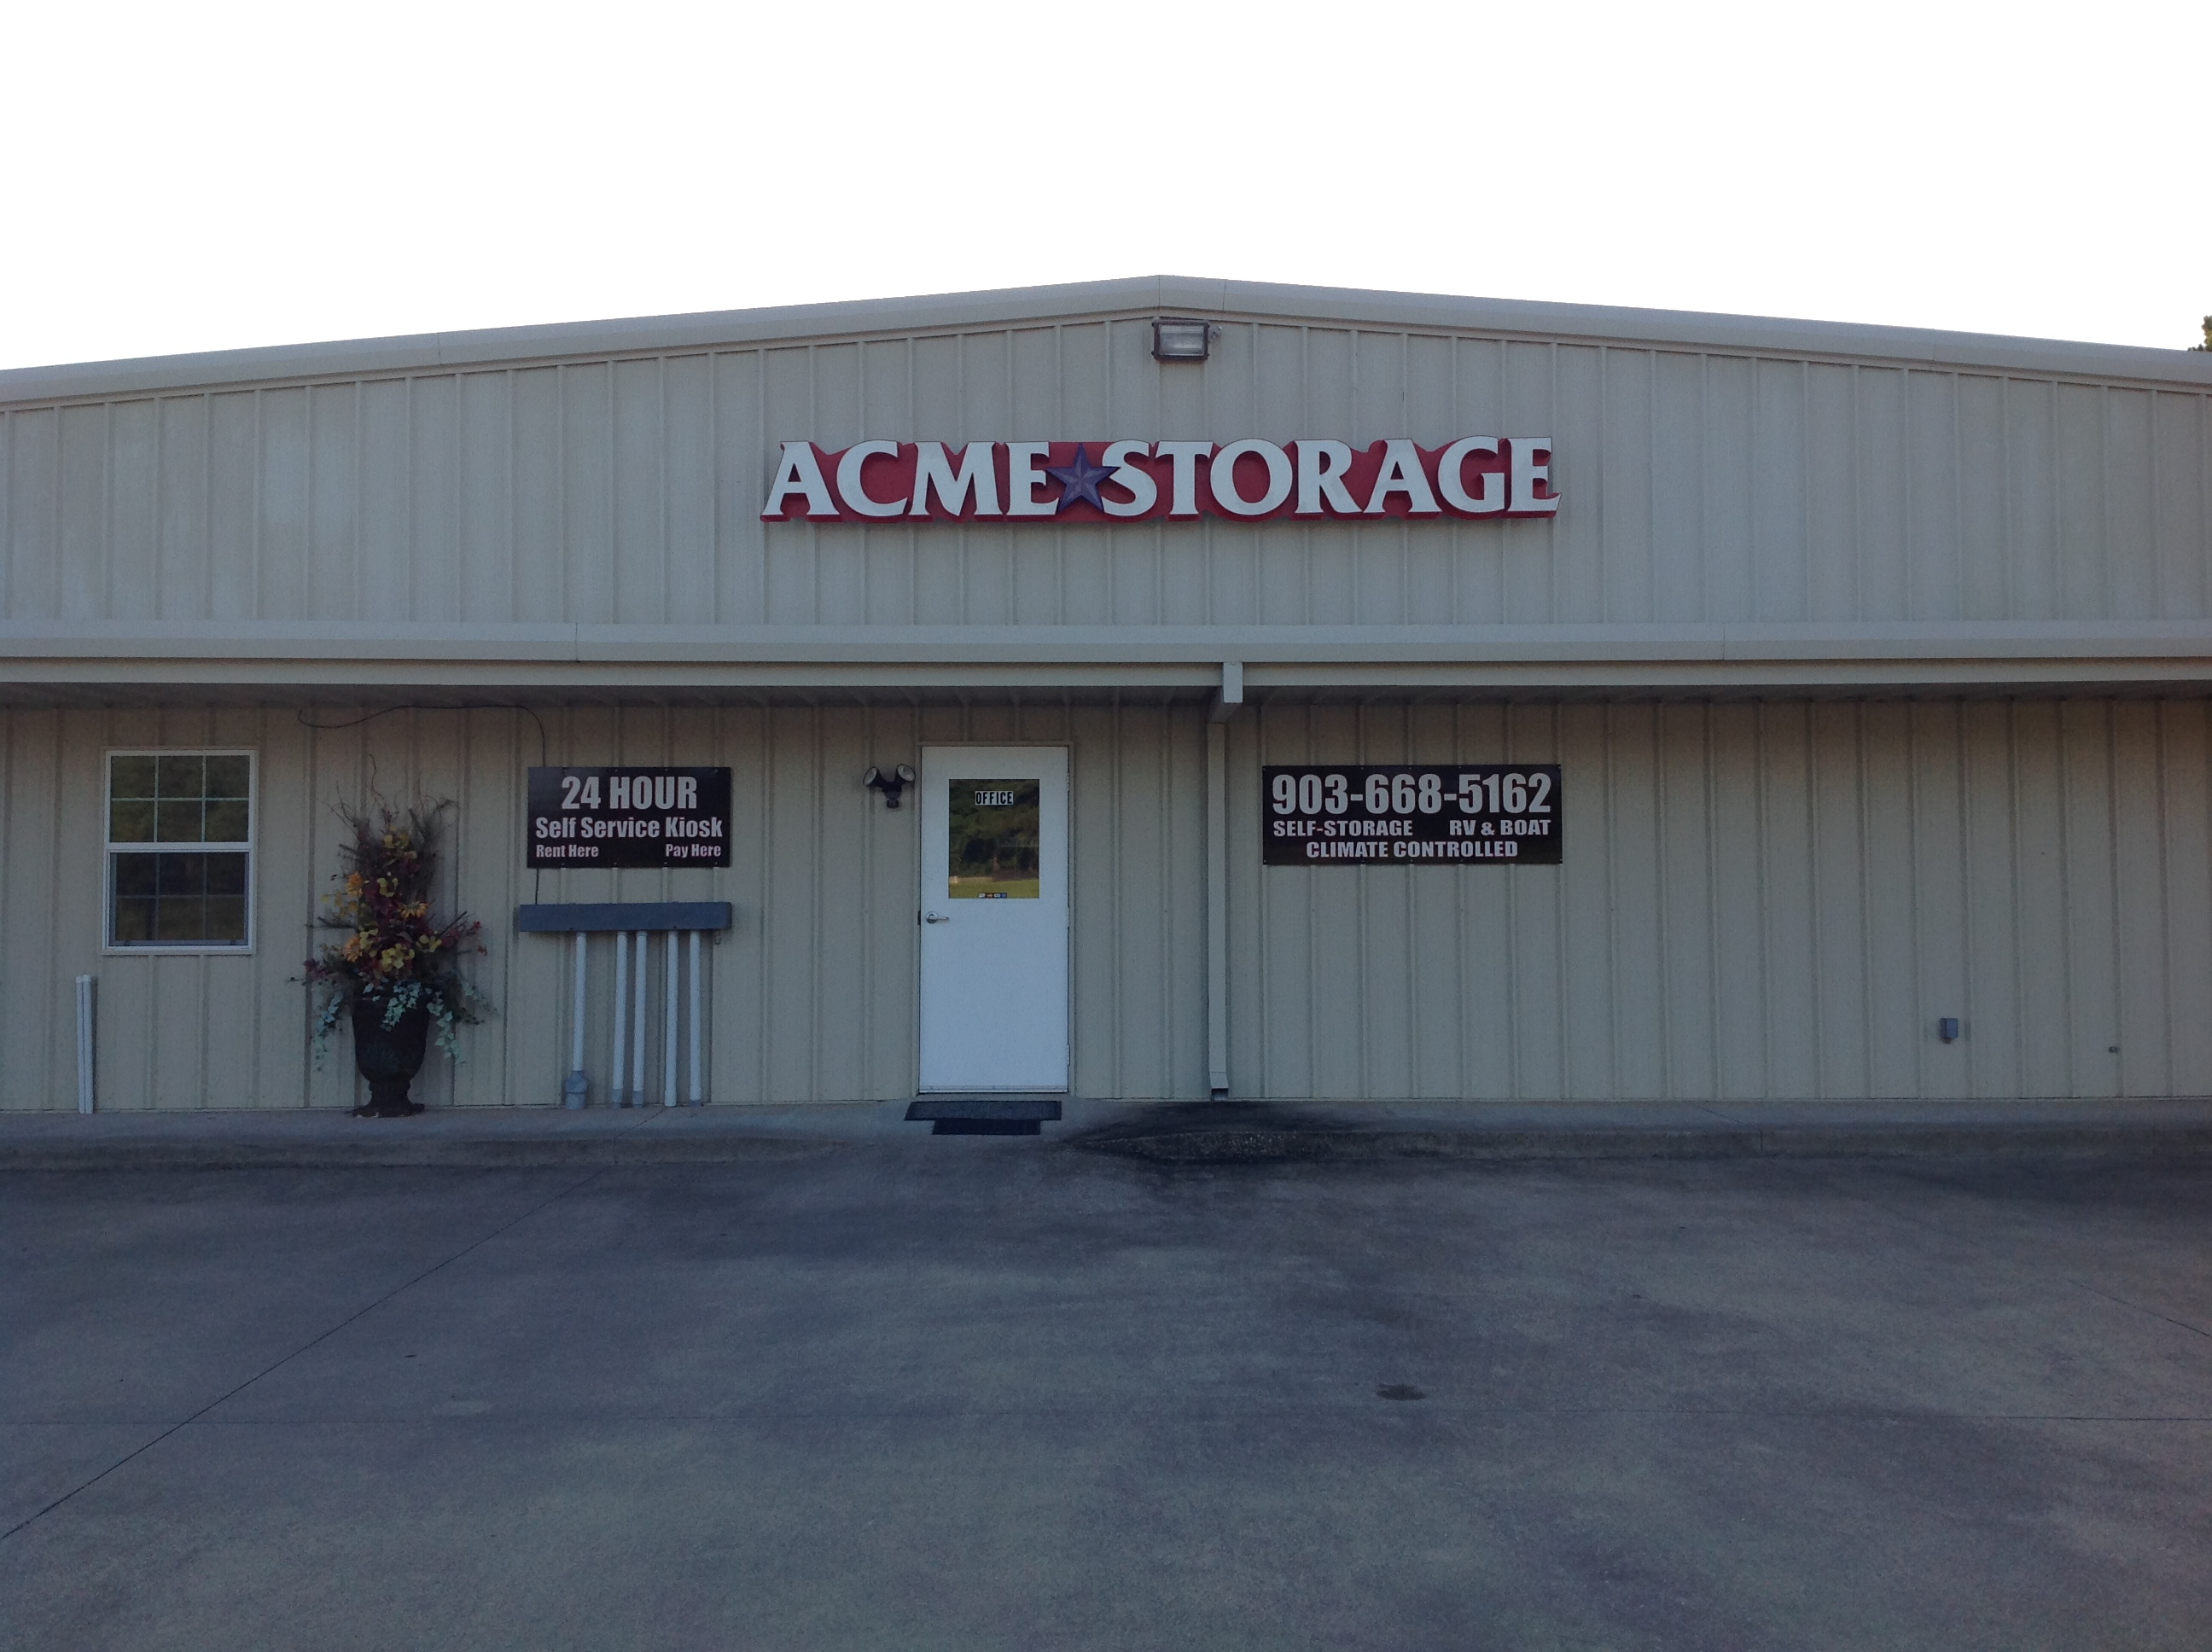 Acme Storage office and kiosk location